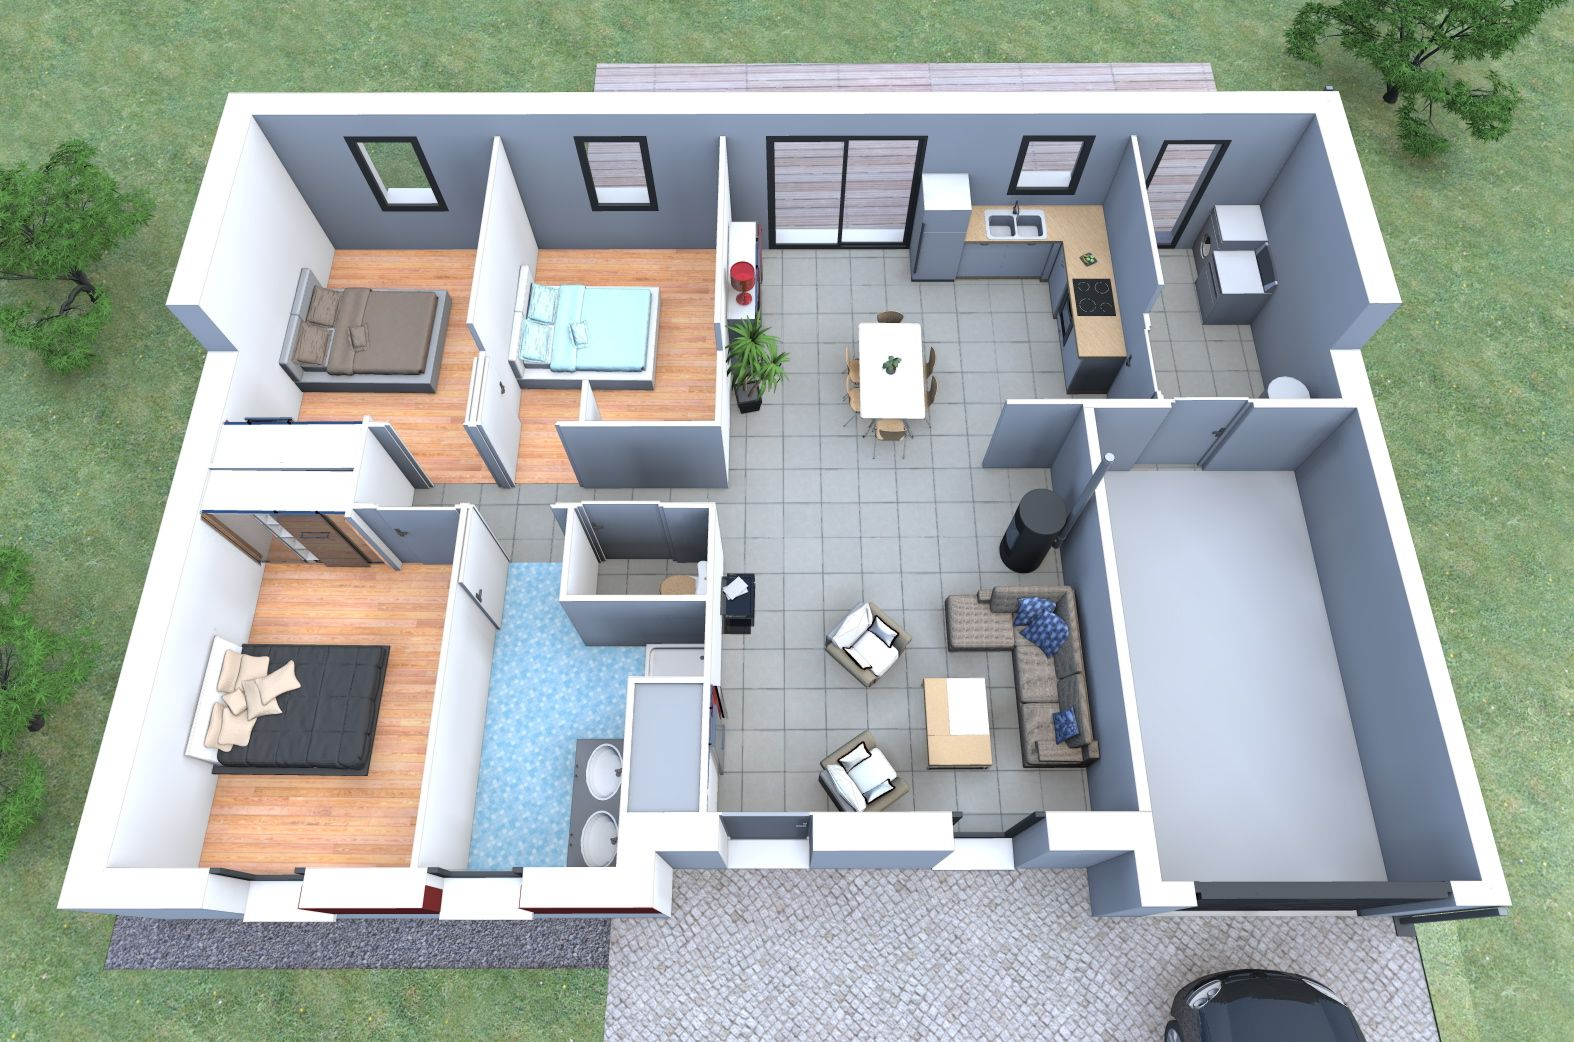 Inspiration de plan de maison 3 chambres garage alliance for Simulation plan de maison